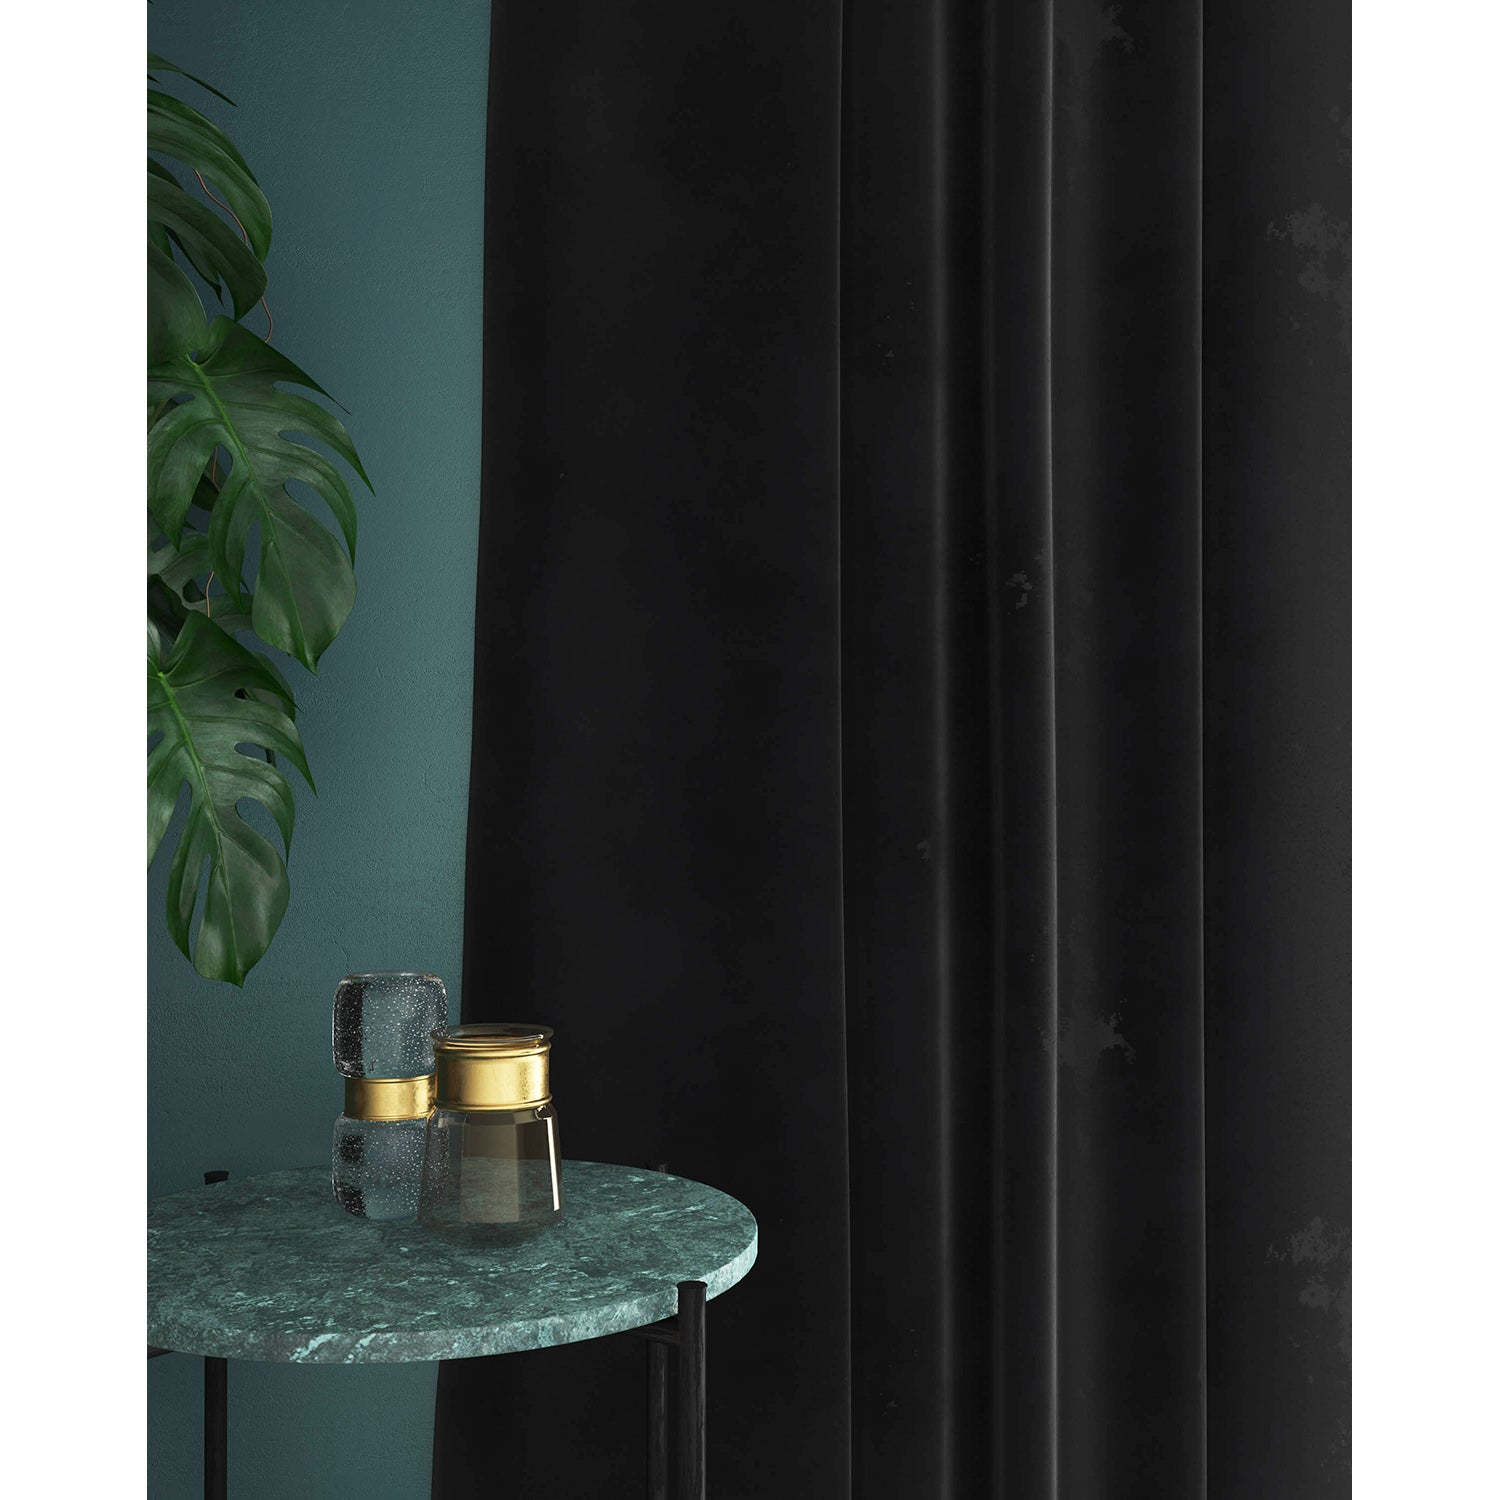 Curtain in a luxury plain black velvet fabric with a stain resistant finish